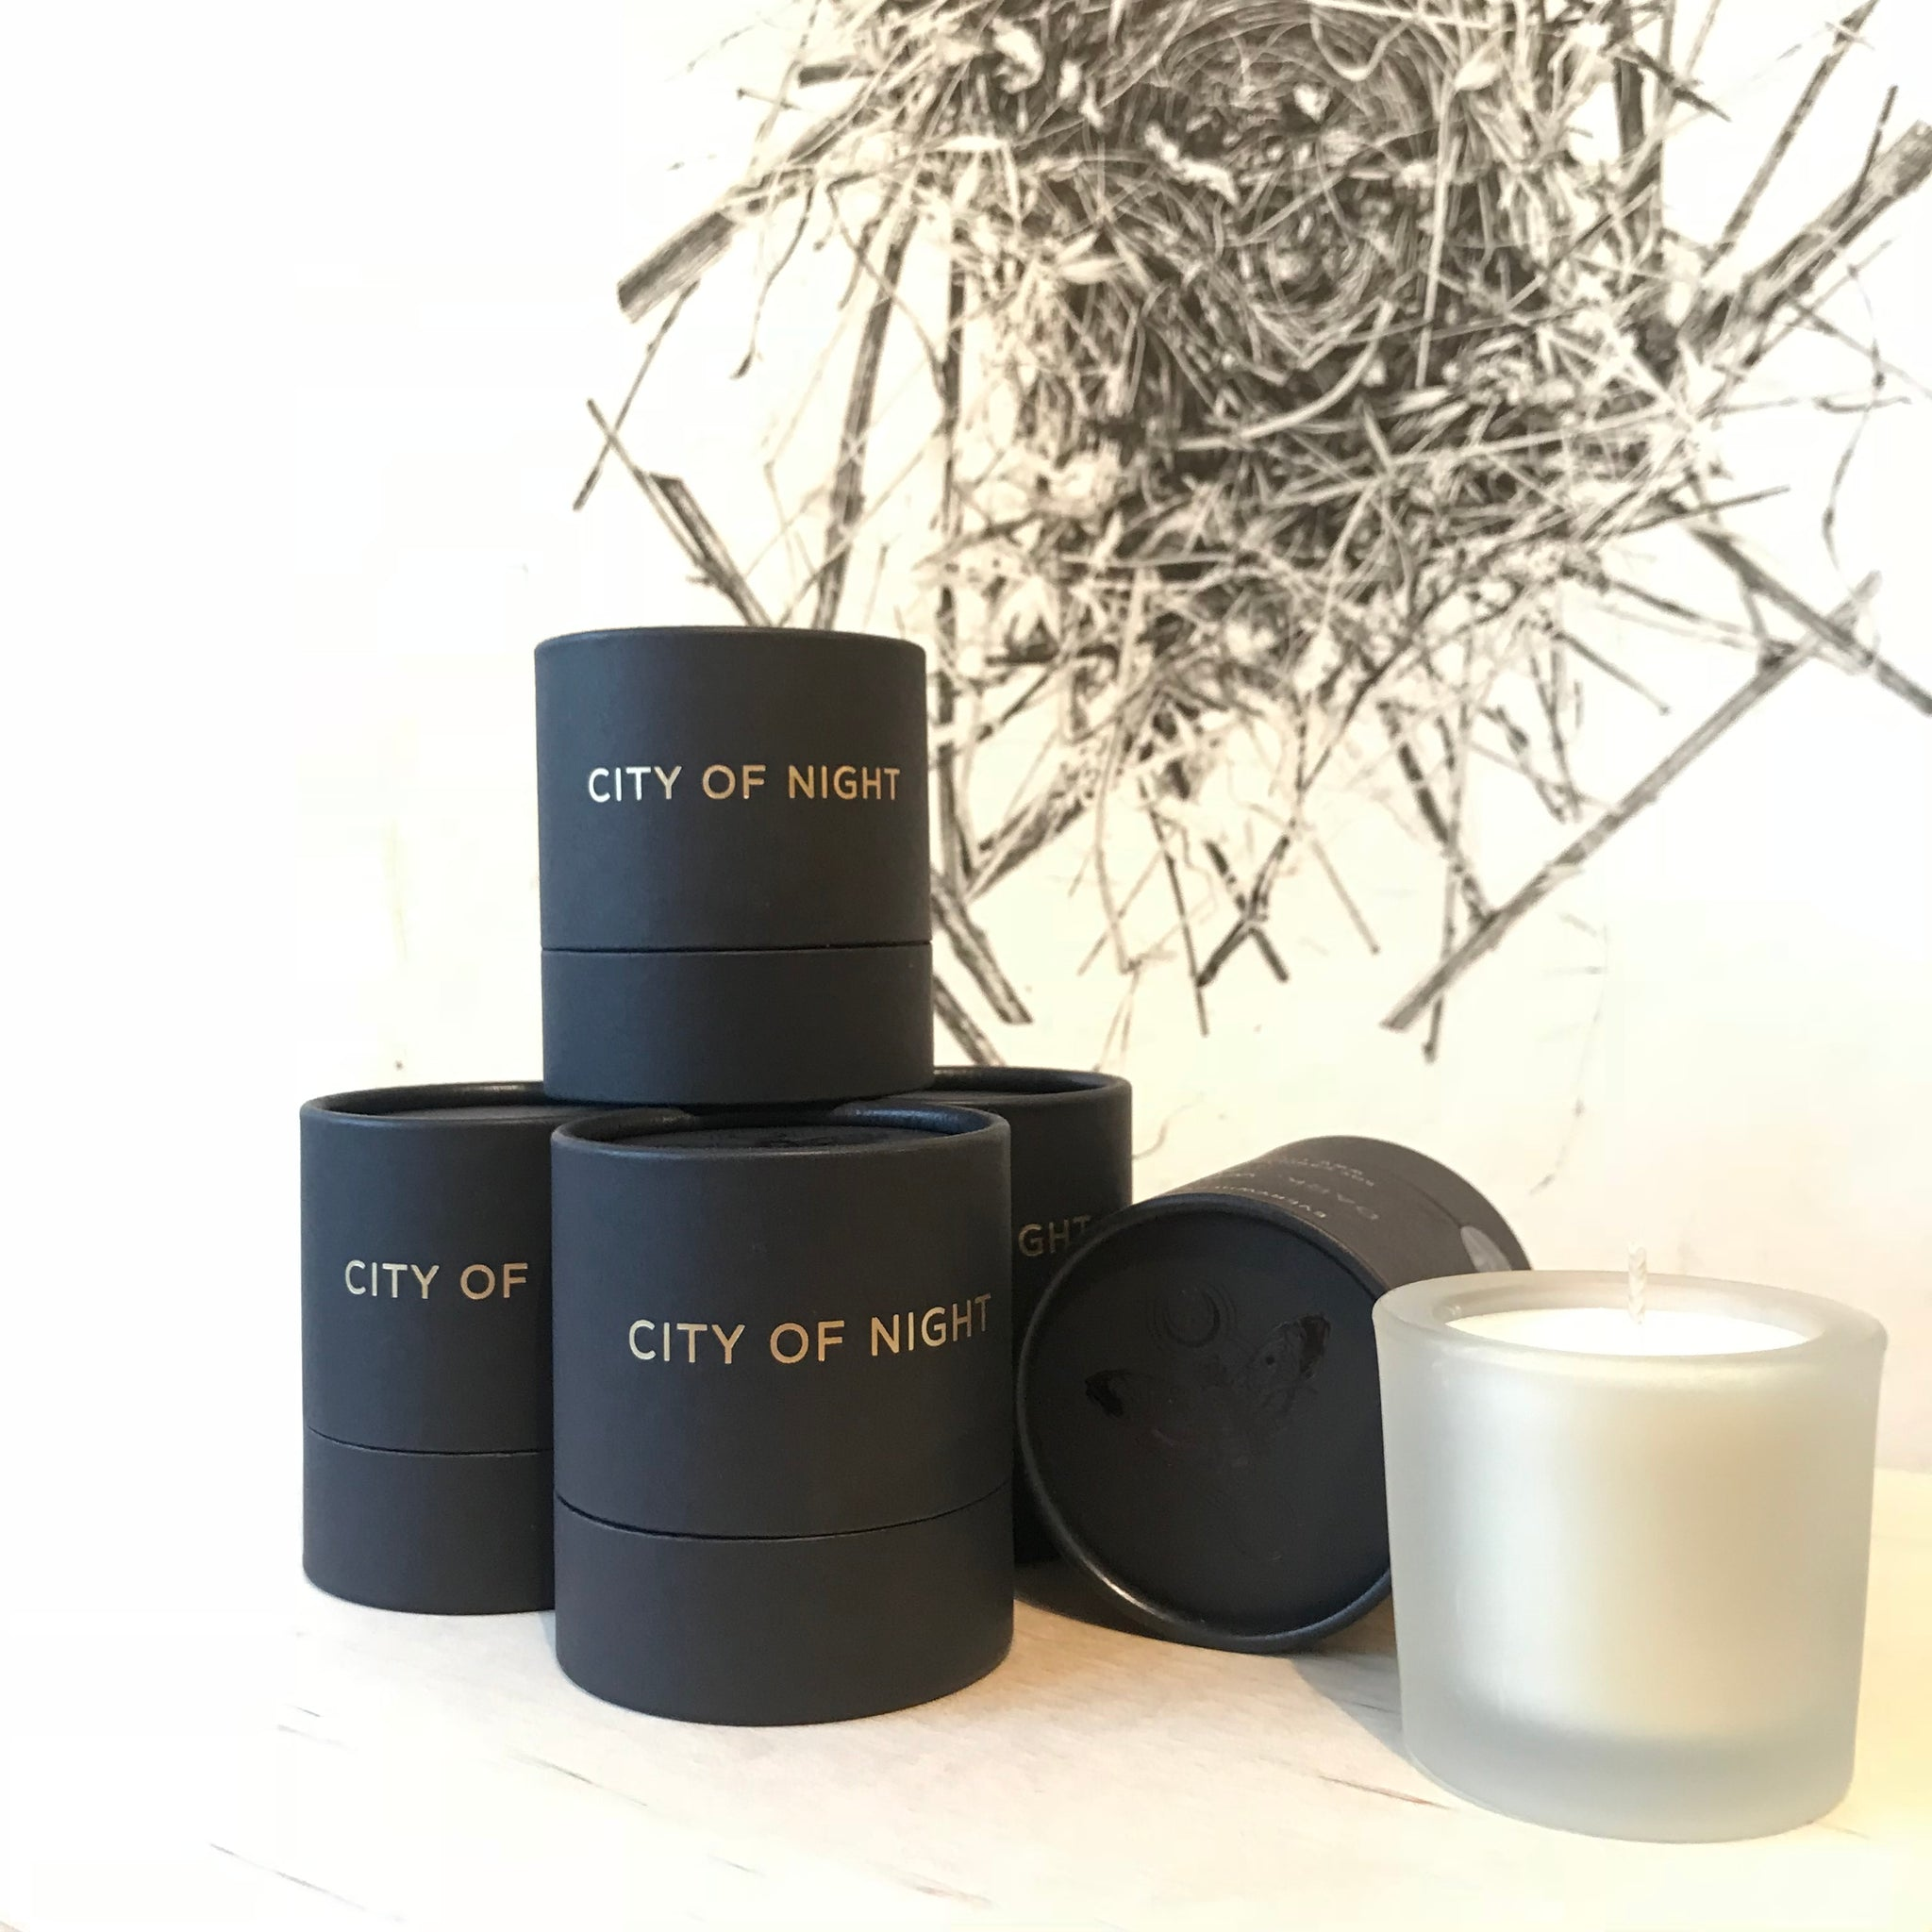 City of Night Hand-Poured Candle by Tatine - Upstate MN